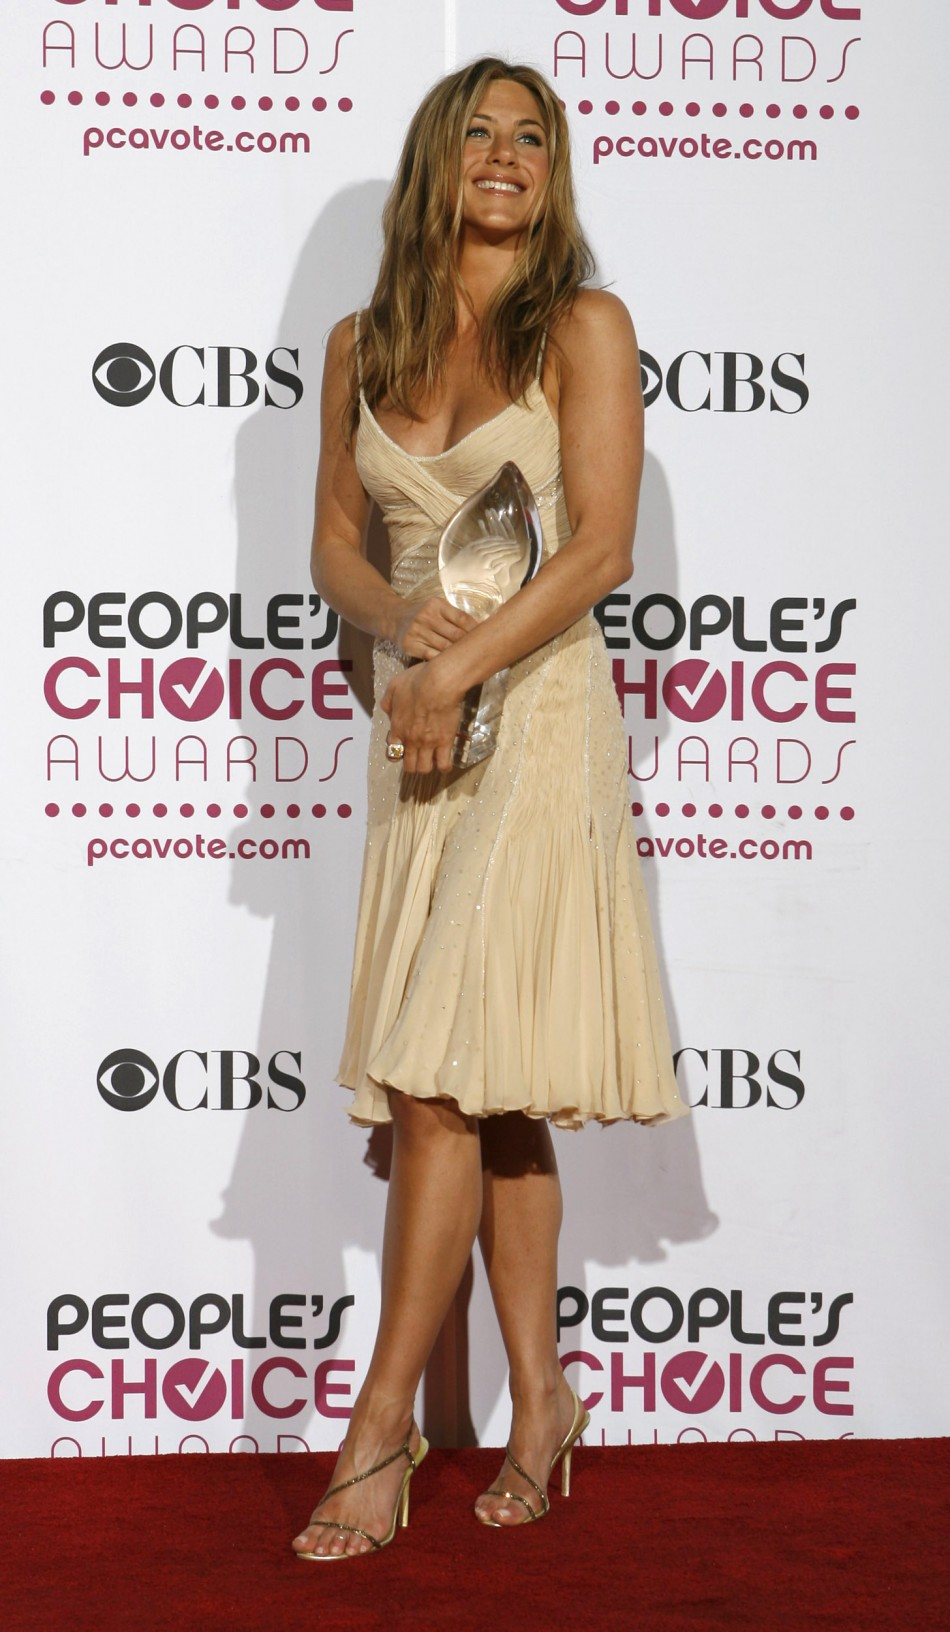 Jennifer Aniston holds her award backstage at the 33rd annual People's Choice Awards